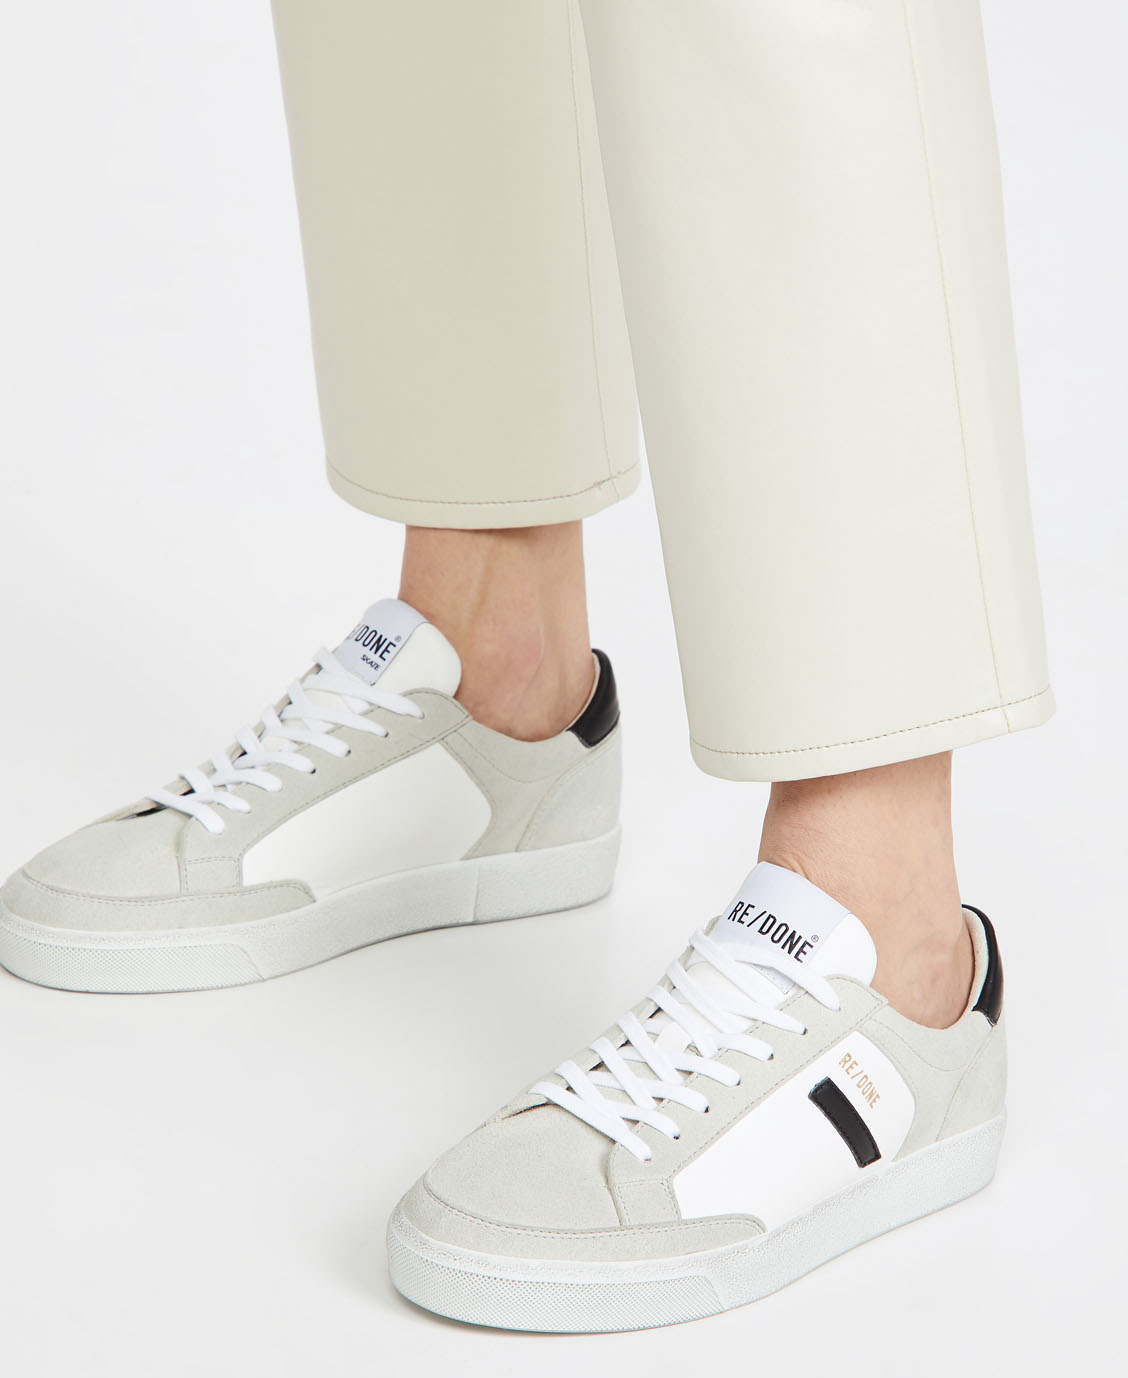 A pair of sustainable sneakers featuring a subtle mix of faux leather and faux suede materials